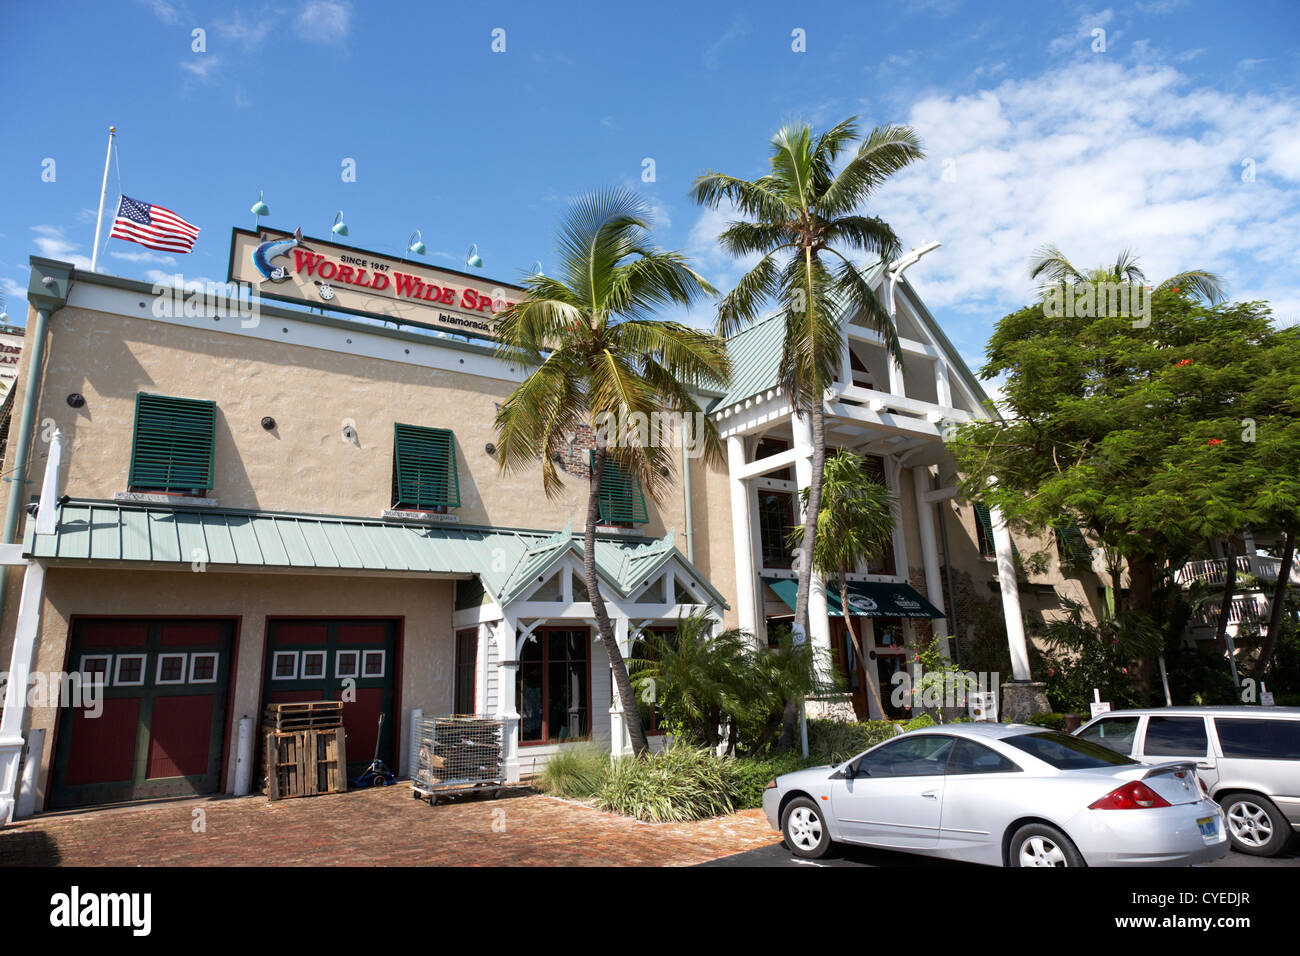 world wide sportsman bass pro shop fishing store islamorada florida keys usa - Stock Image